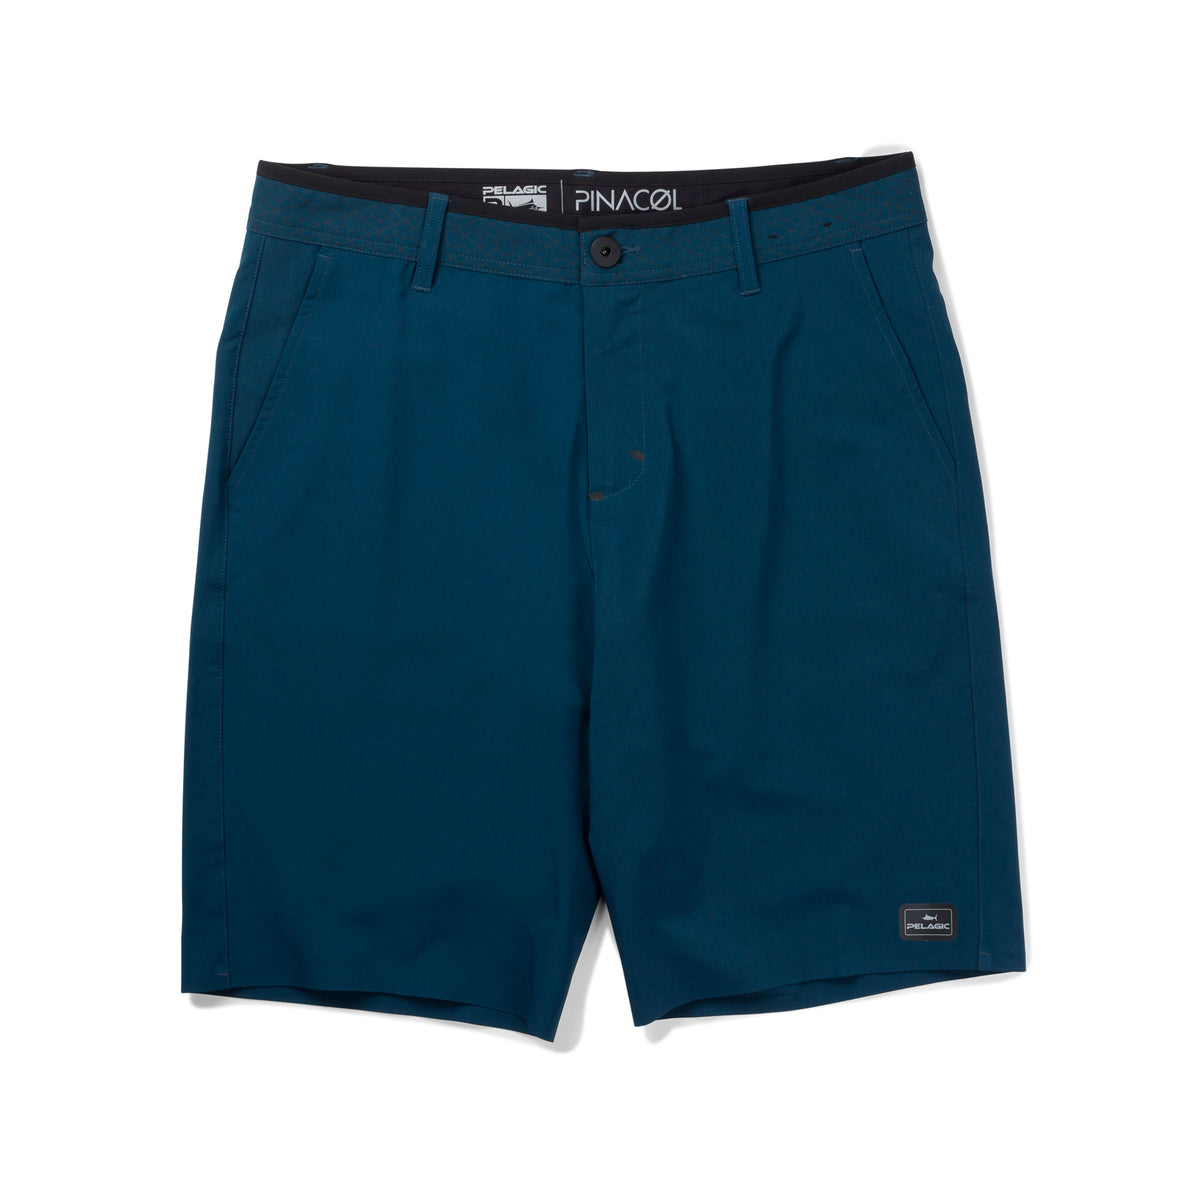 Pinacol Hybrid Fishing Shorts Big Image - 1